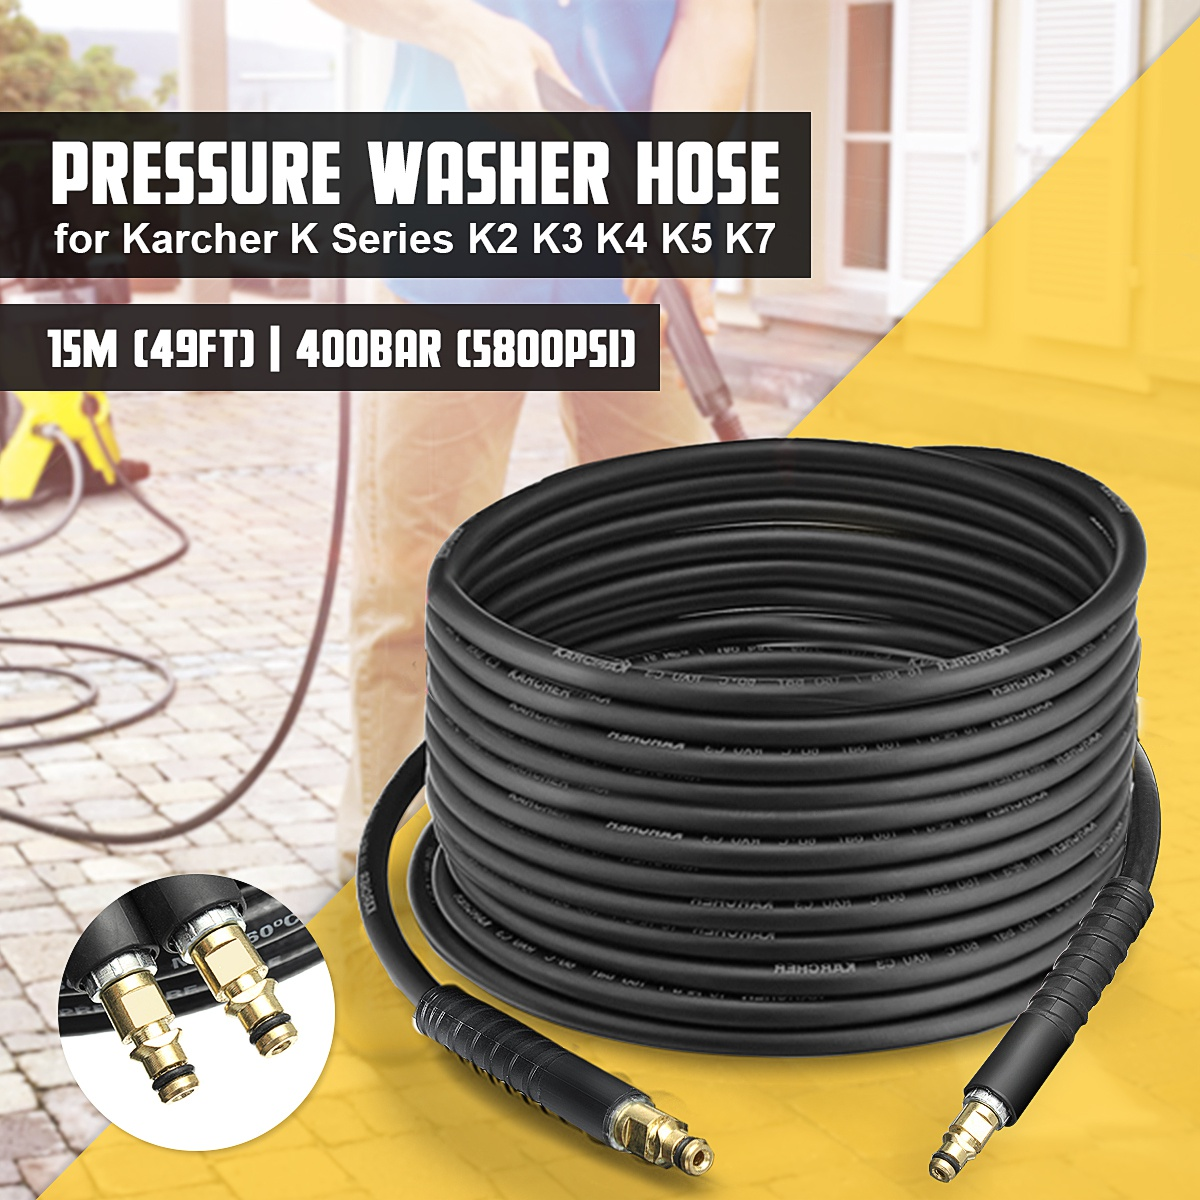 3w Pressure washer karcher hd hds replacement hose 20m new non oem